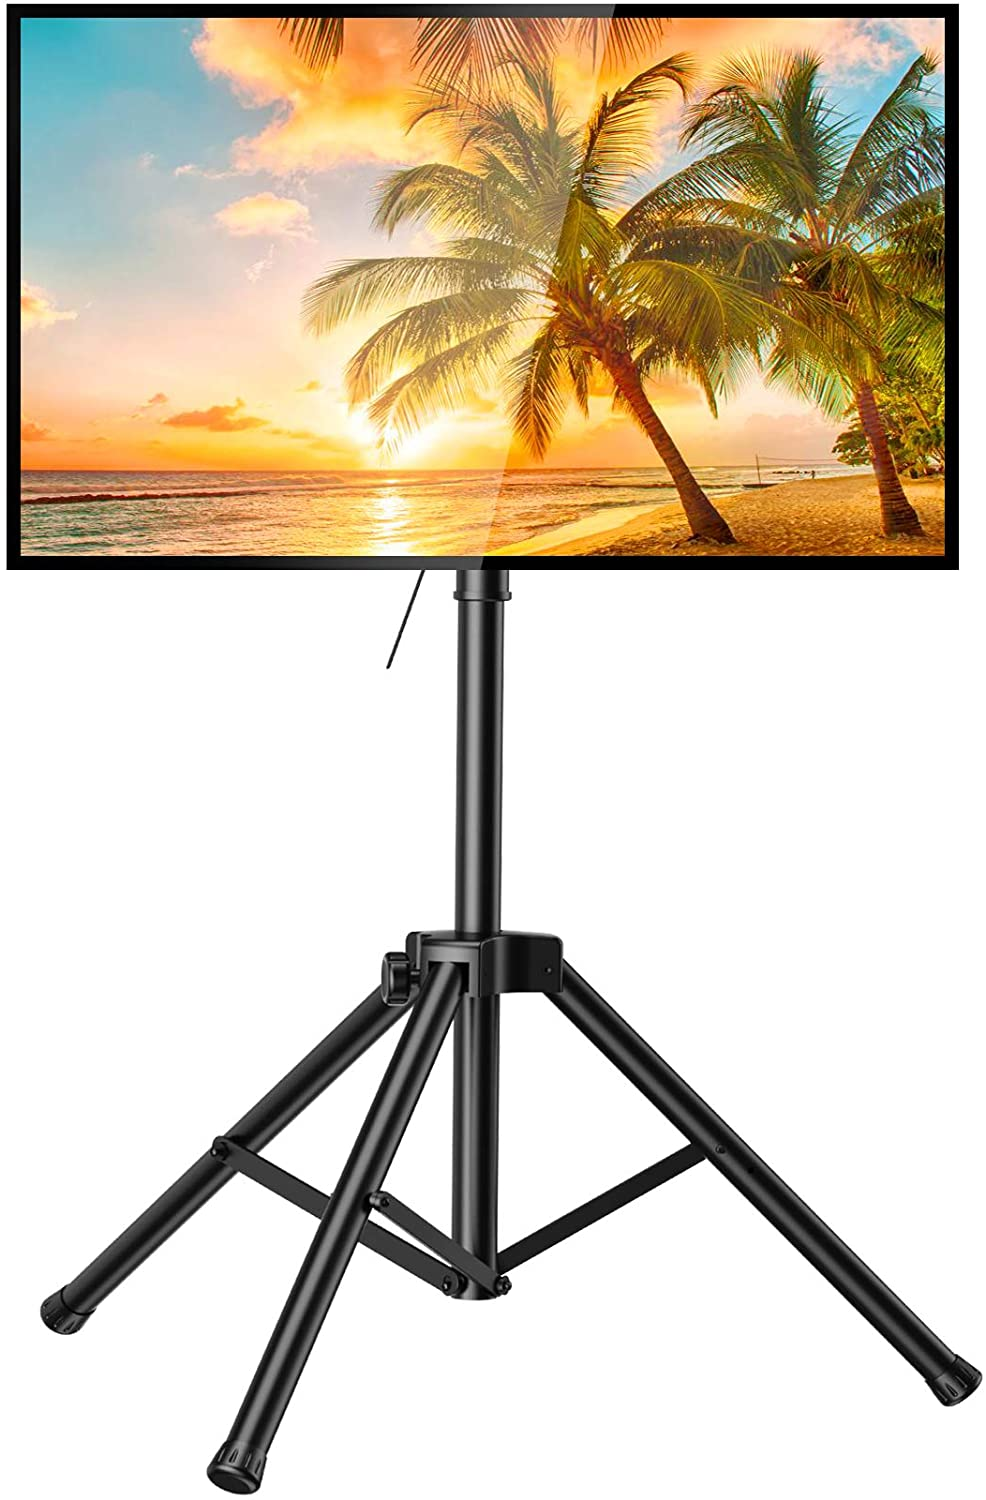 PERLESMITH TV Tripod Stand-Portable TV Stand for 37-75 Inch LED LCD OLED Flat Screen TVs-Height Adjustable Display Floor TV Stand with VESA 600x400mm, Holds up to 110lbs (PSTM2)